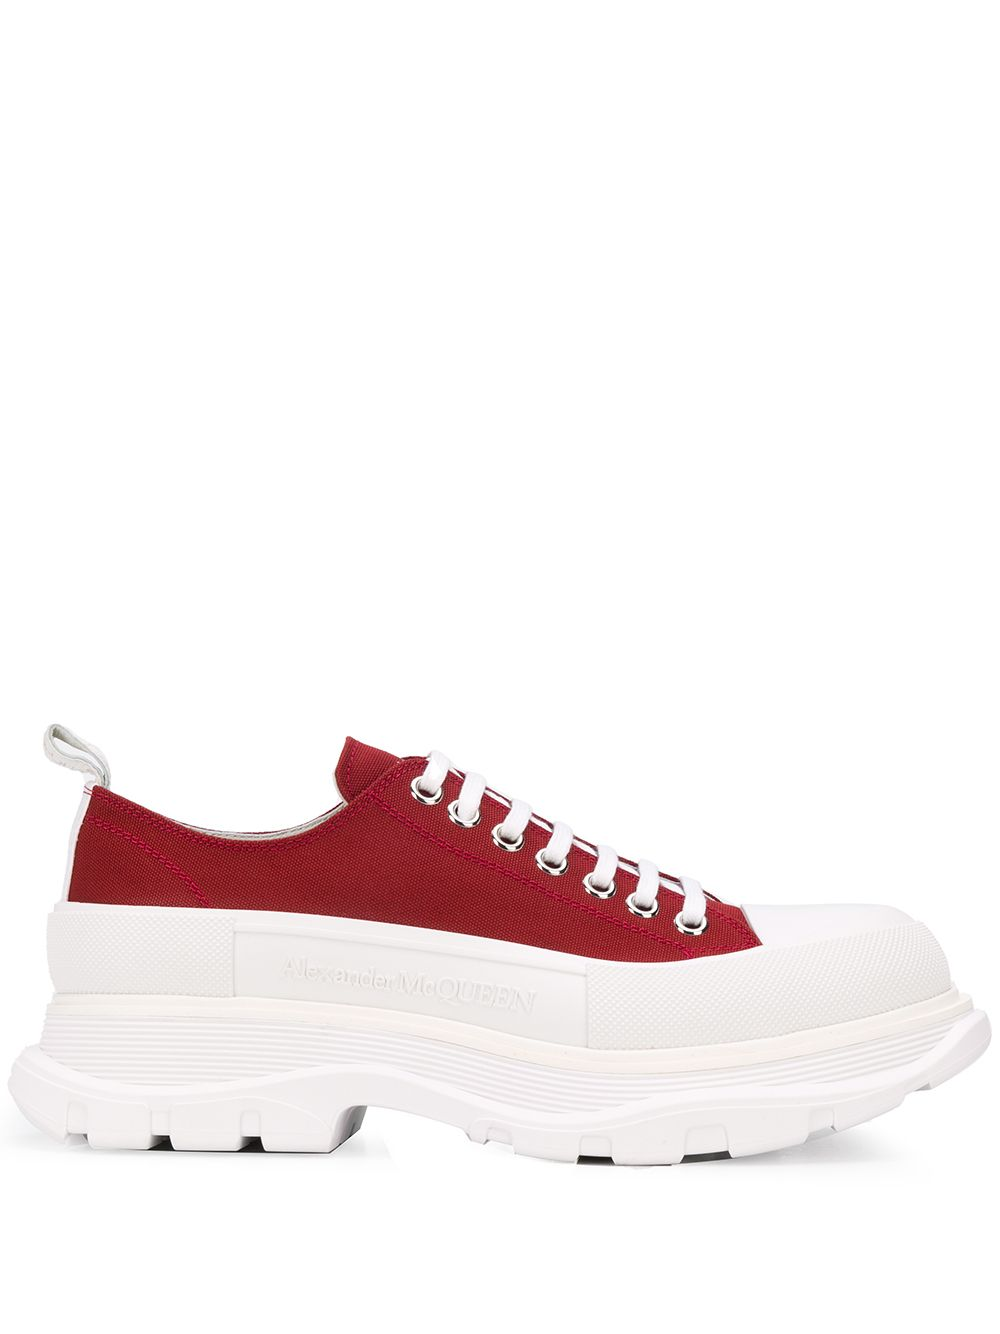 Tread Slick Cotton Sneakers